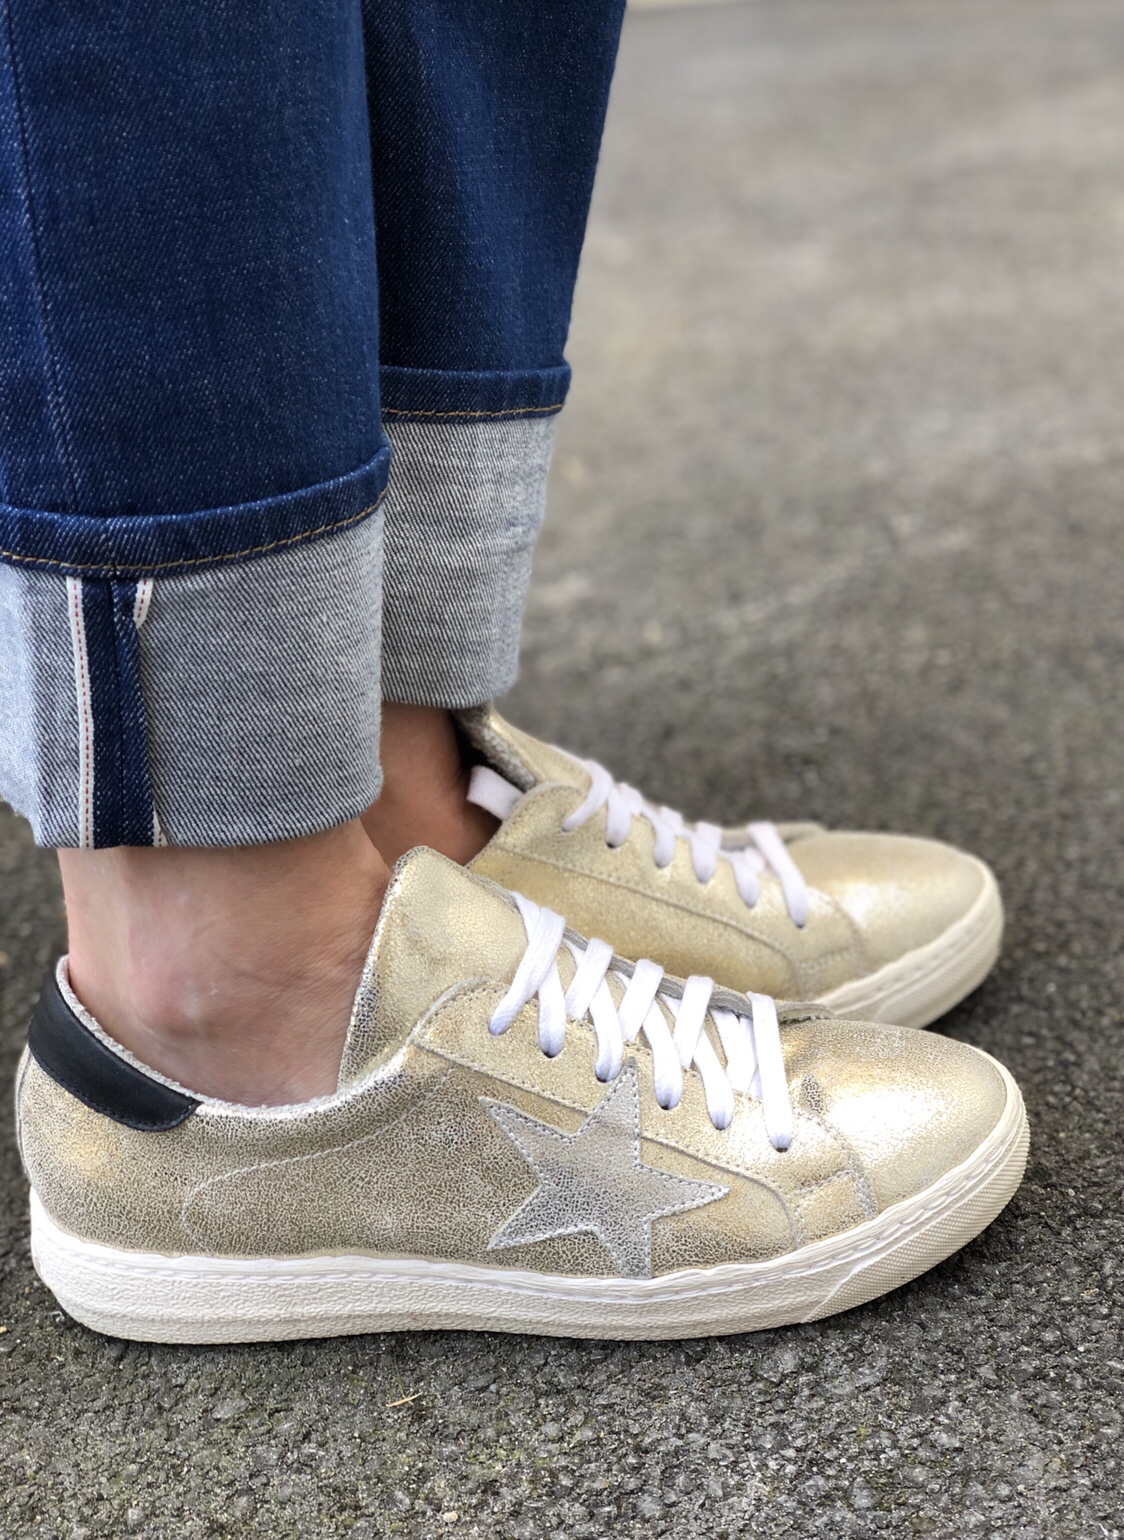 russell and bromley leather gold star sneakers trainers